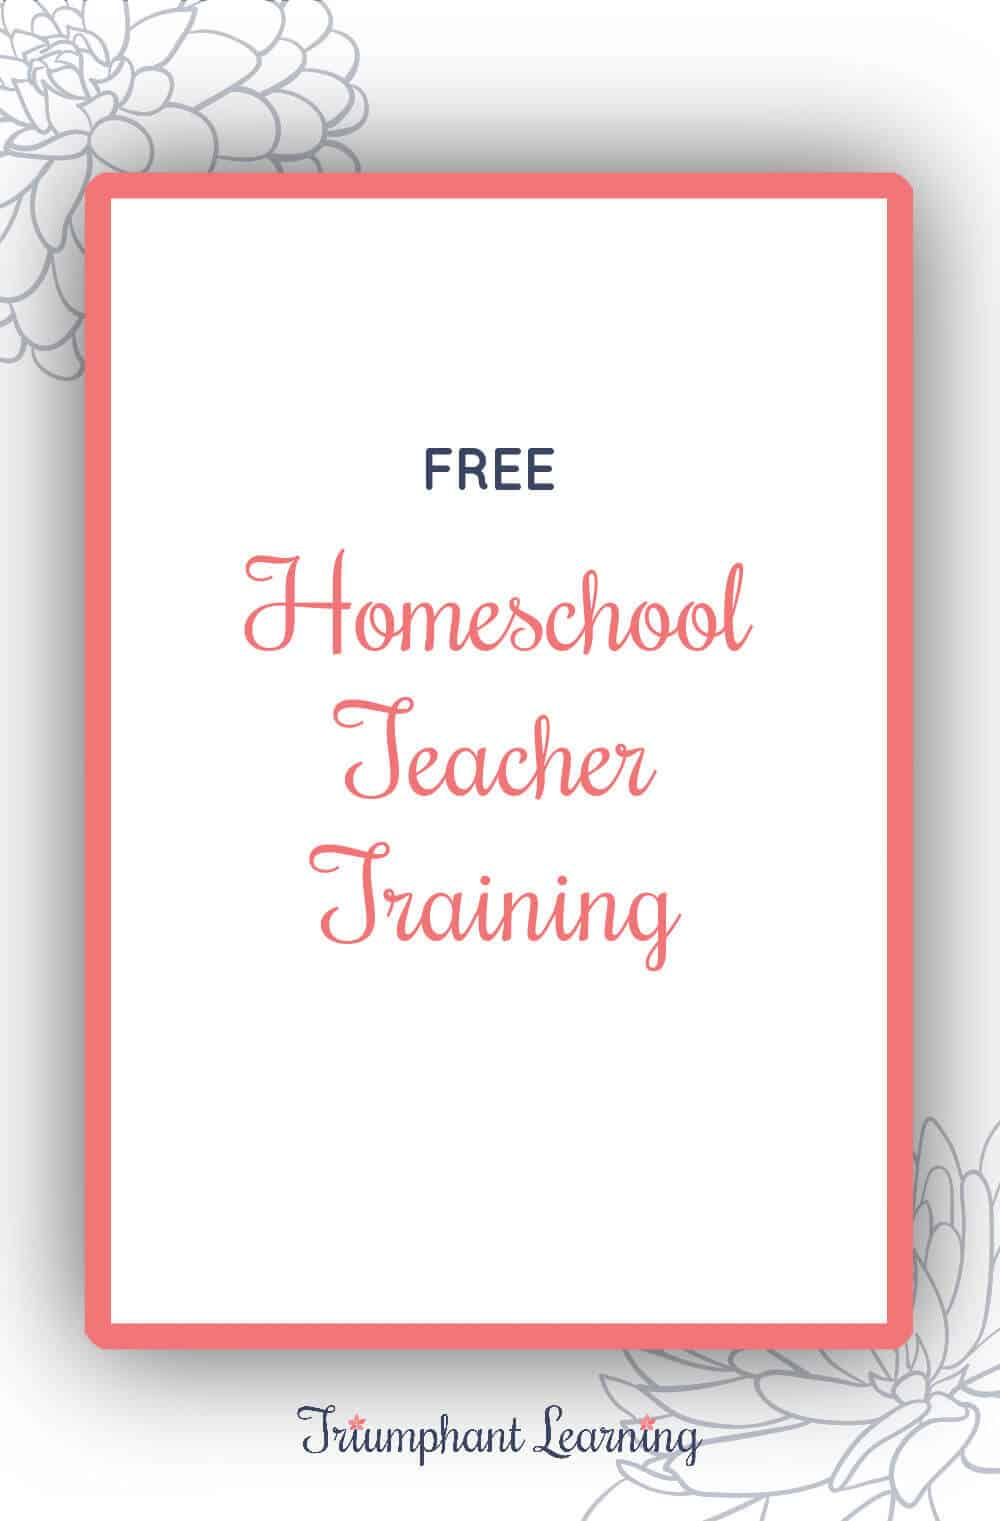 Join us for a free master class and increase your confidence and skills as a homeschool teacher. Attend live or watch the replay. via @TriLearning